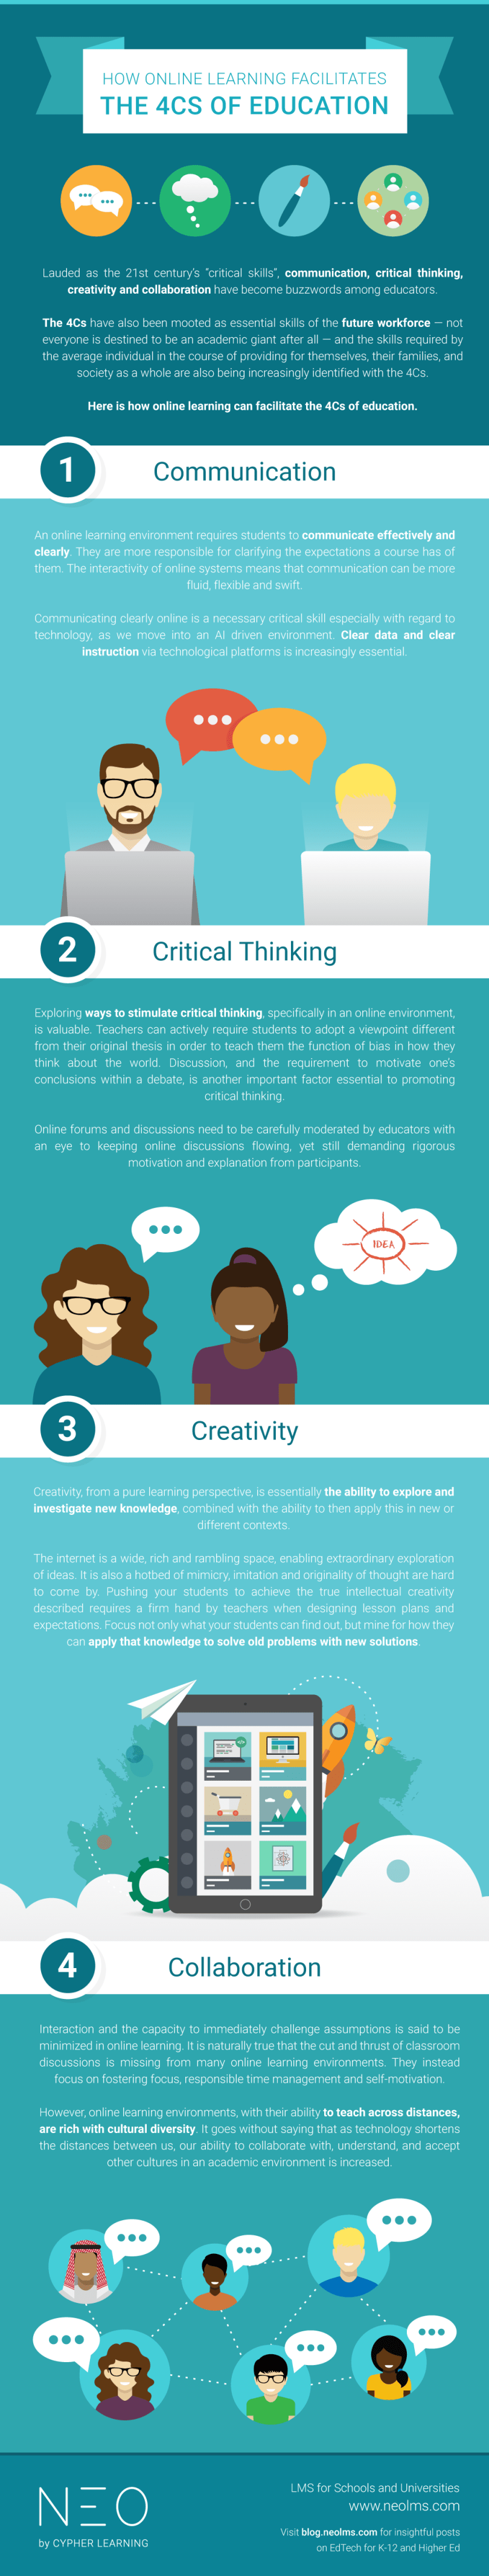 The 4 Cs of education online INFOGRAPHIC